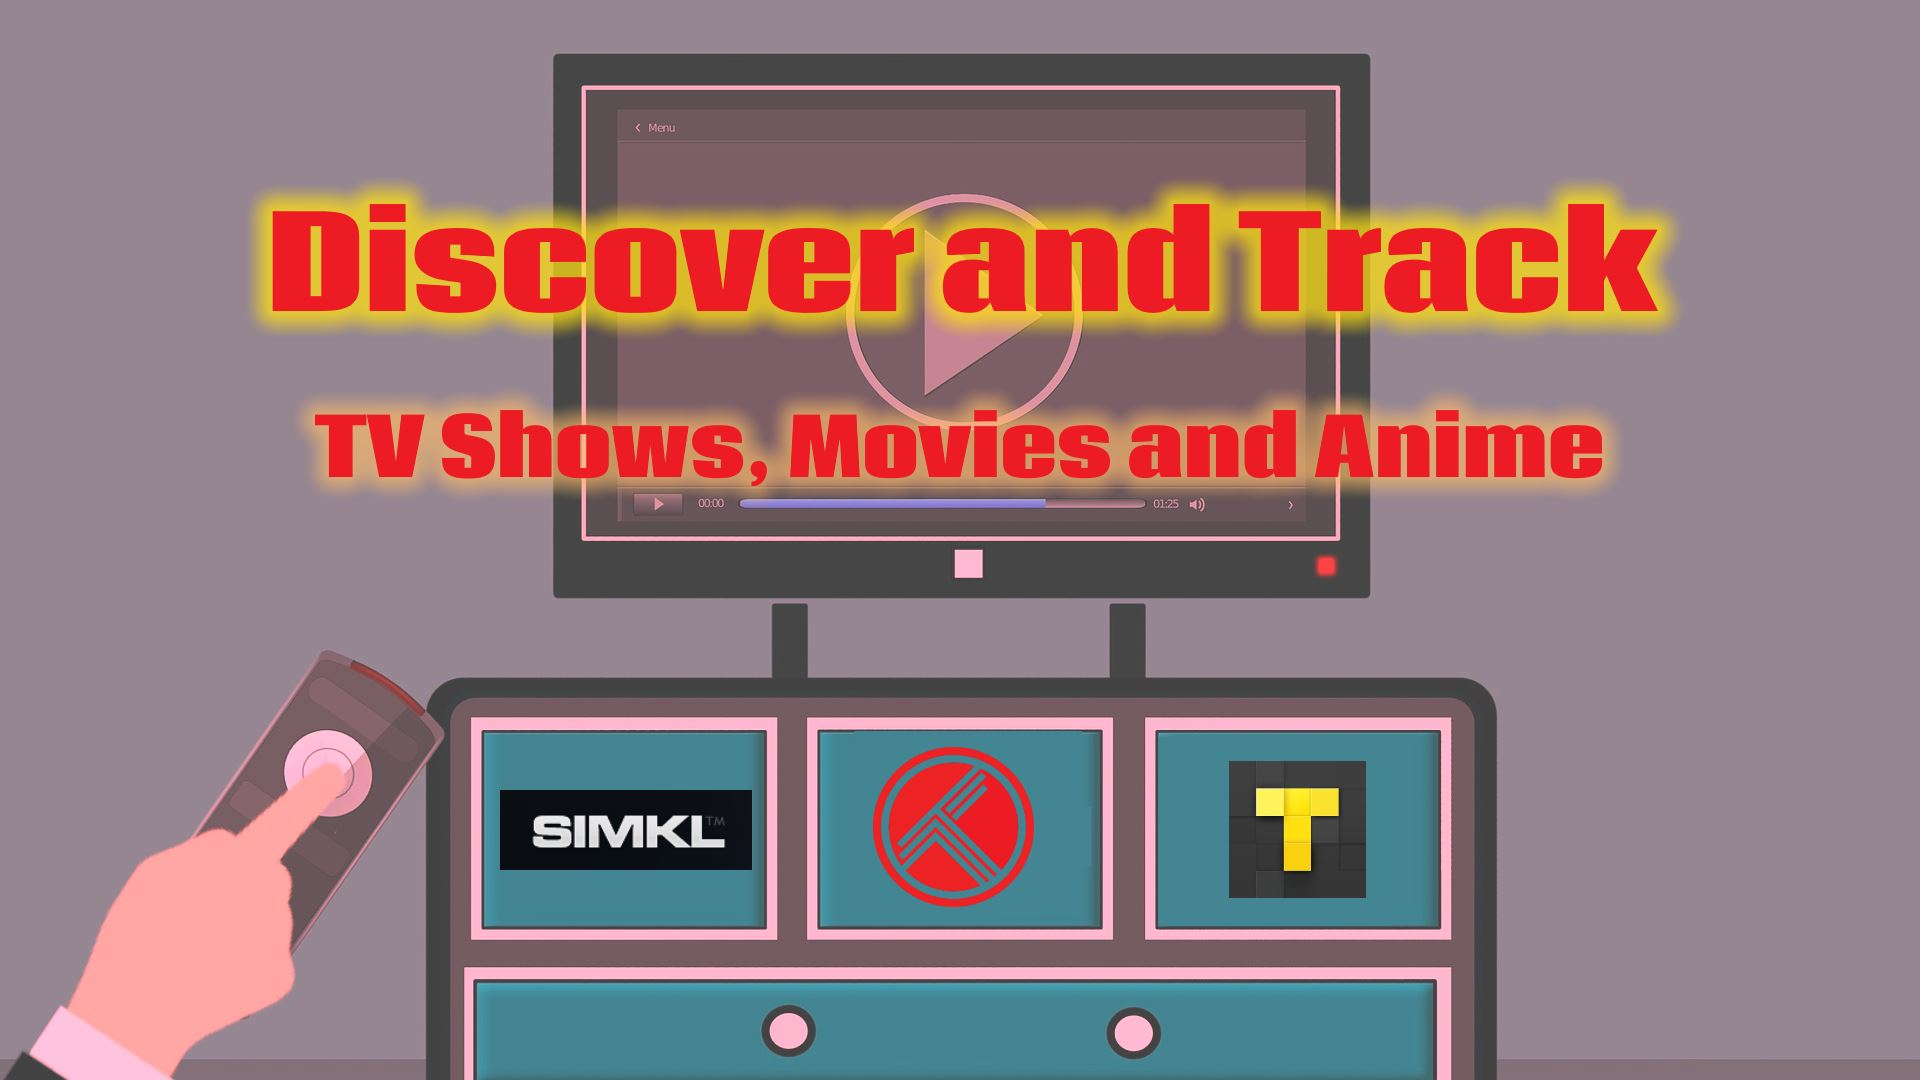 Explore track watched episodes TV shows movies anime tvtime.com trakt.tv simkl.com